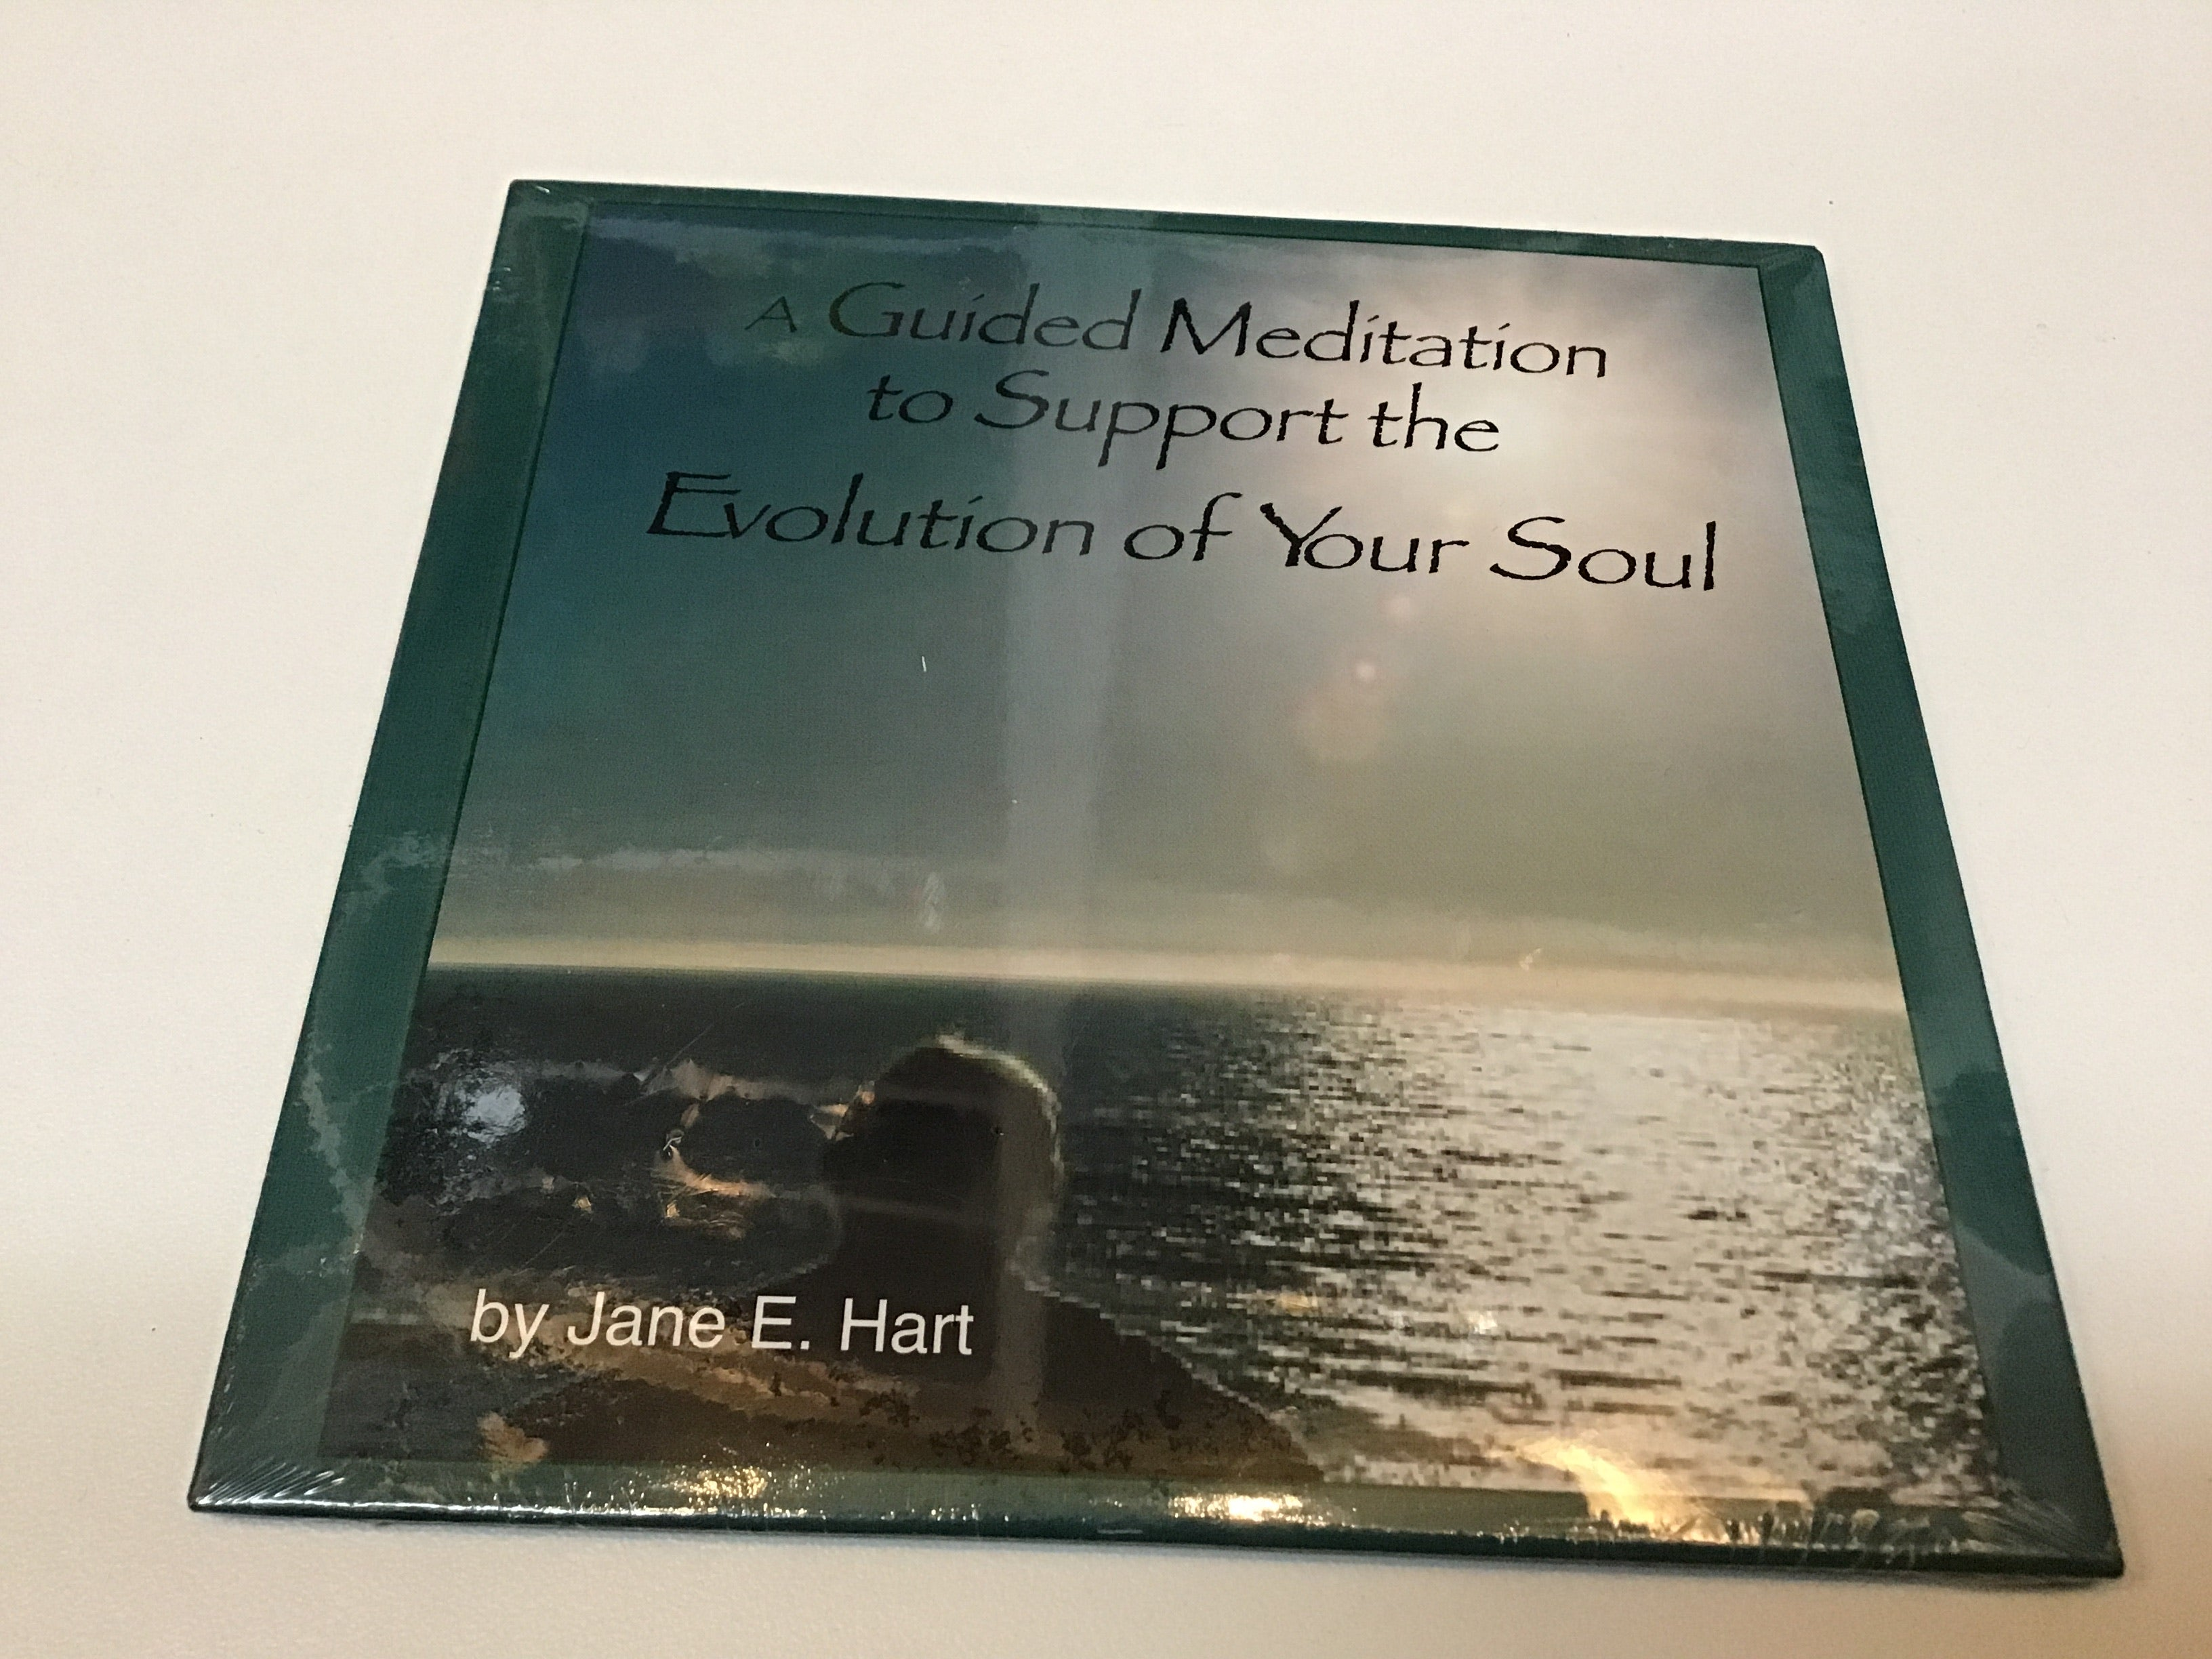 A Guided Meditation to Support the Evolution of Your Soul